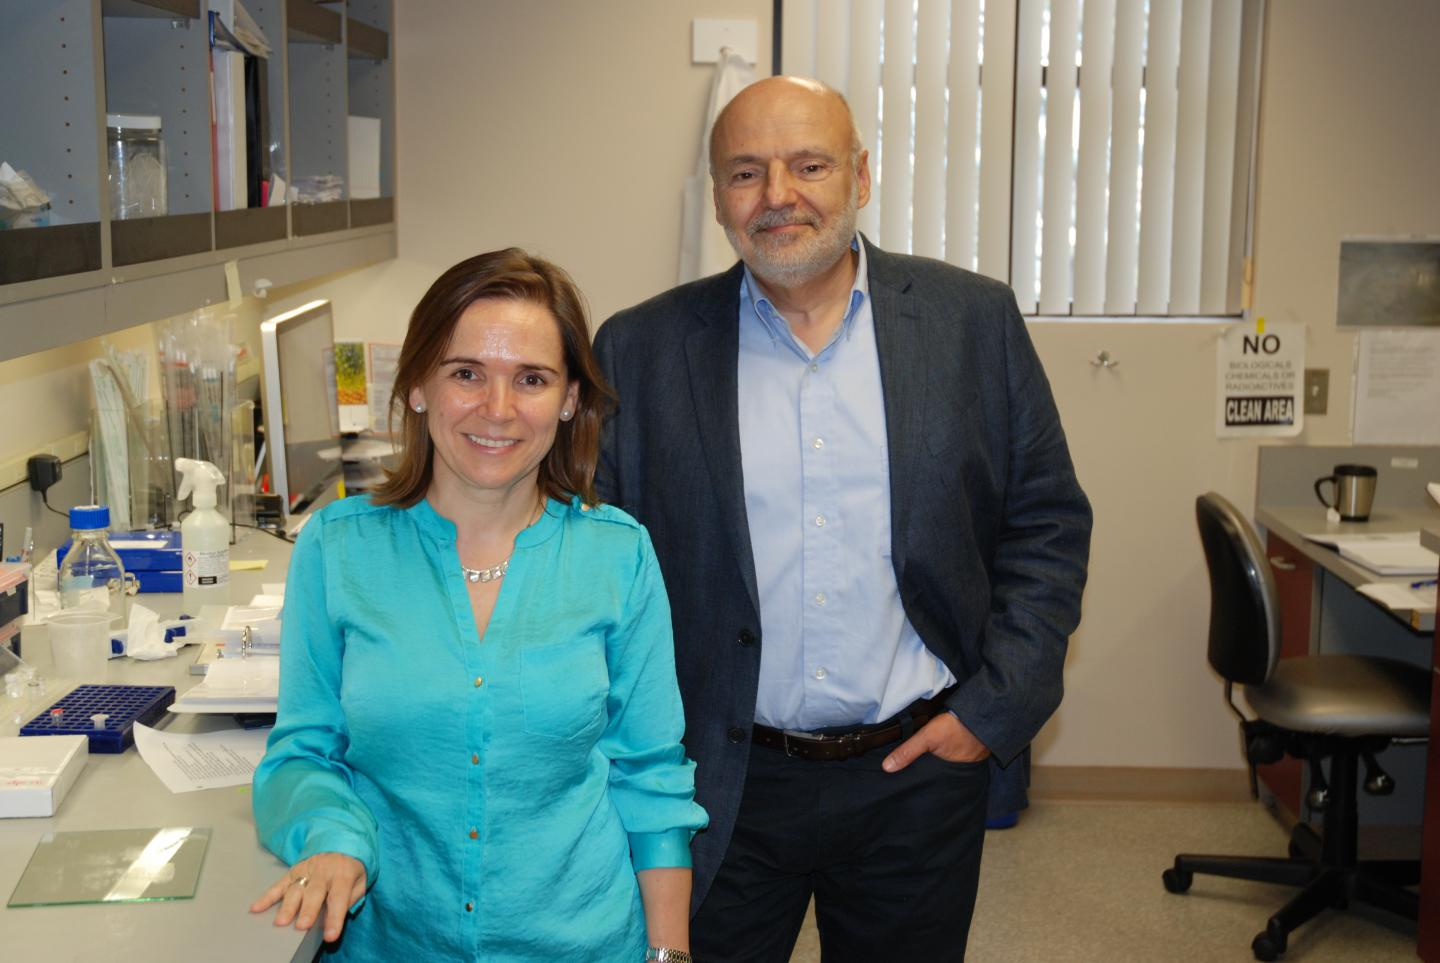 This is Maria-Diaz Meco, Ph.D., professor, and Jorge Moscat, Ph.D., professor and director of Metabolism Initiatives at SBP. / Credit: Sanford Burnham Prebys Medical Discovery Institute (SBP)